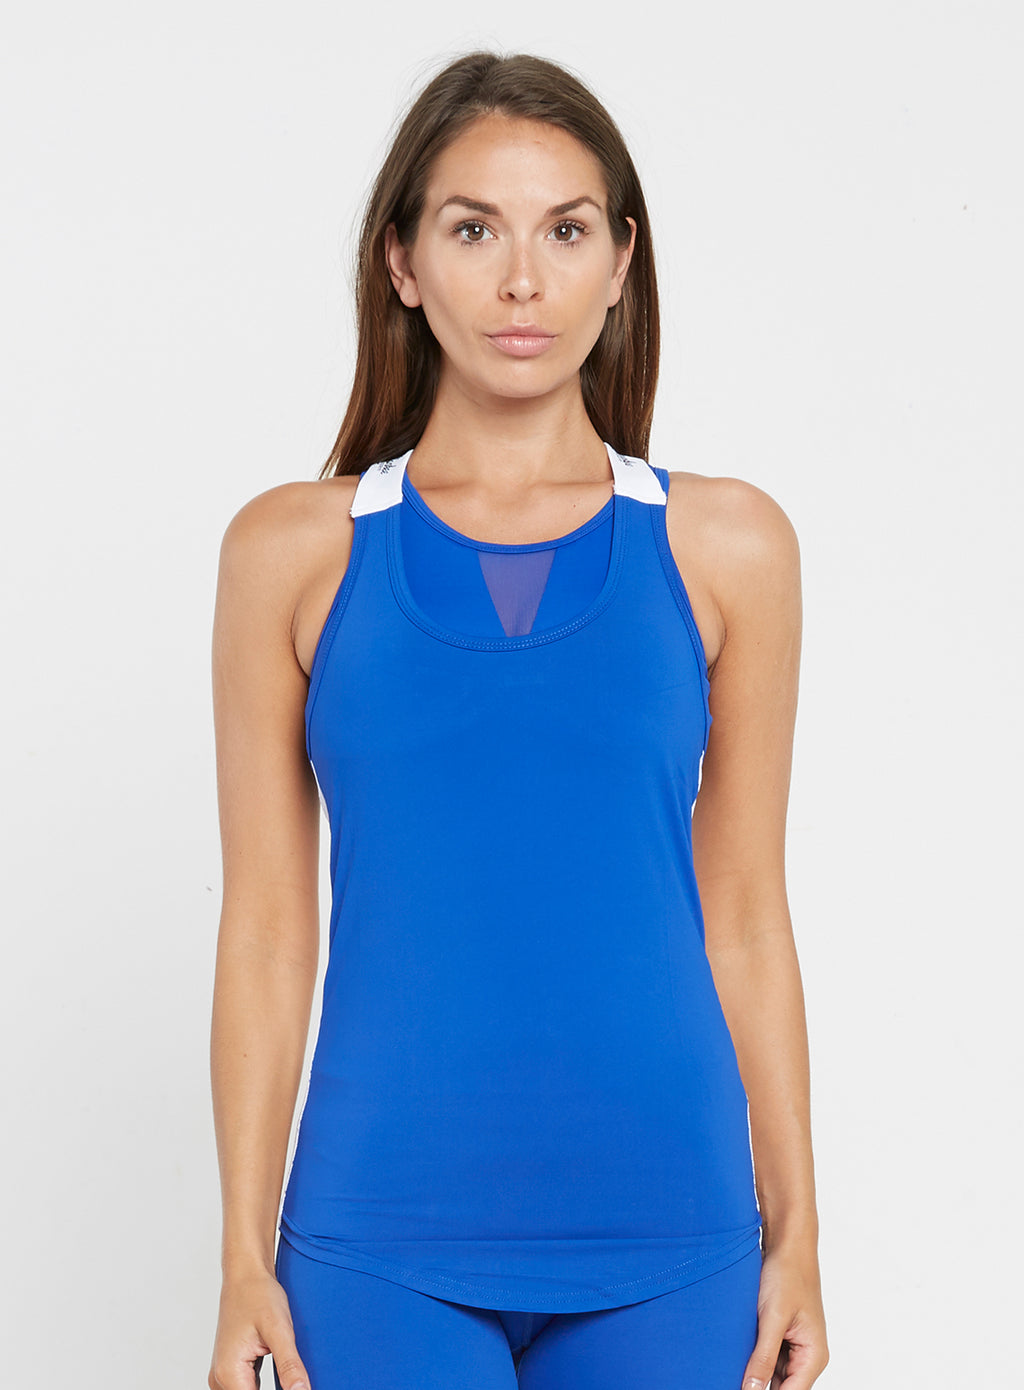 Gym Monkee - Ladies Blue and White Strap Top FRONT